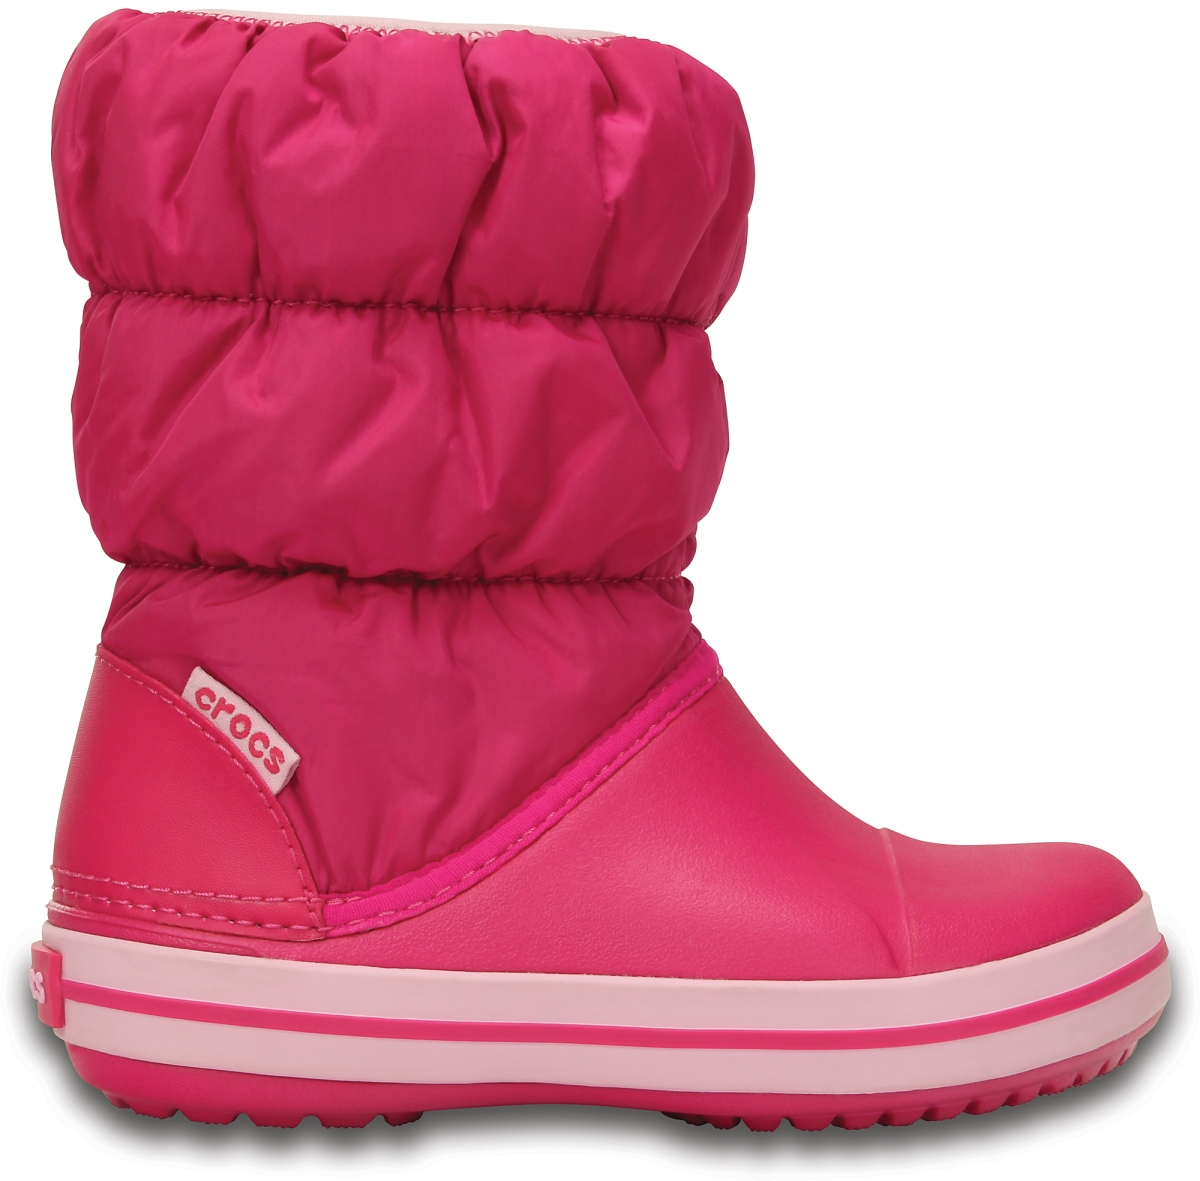 Crocs Winter Puff Boot Kids - Candy Pink, J1 (32-33)